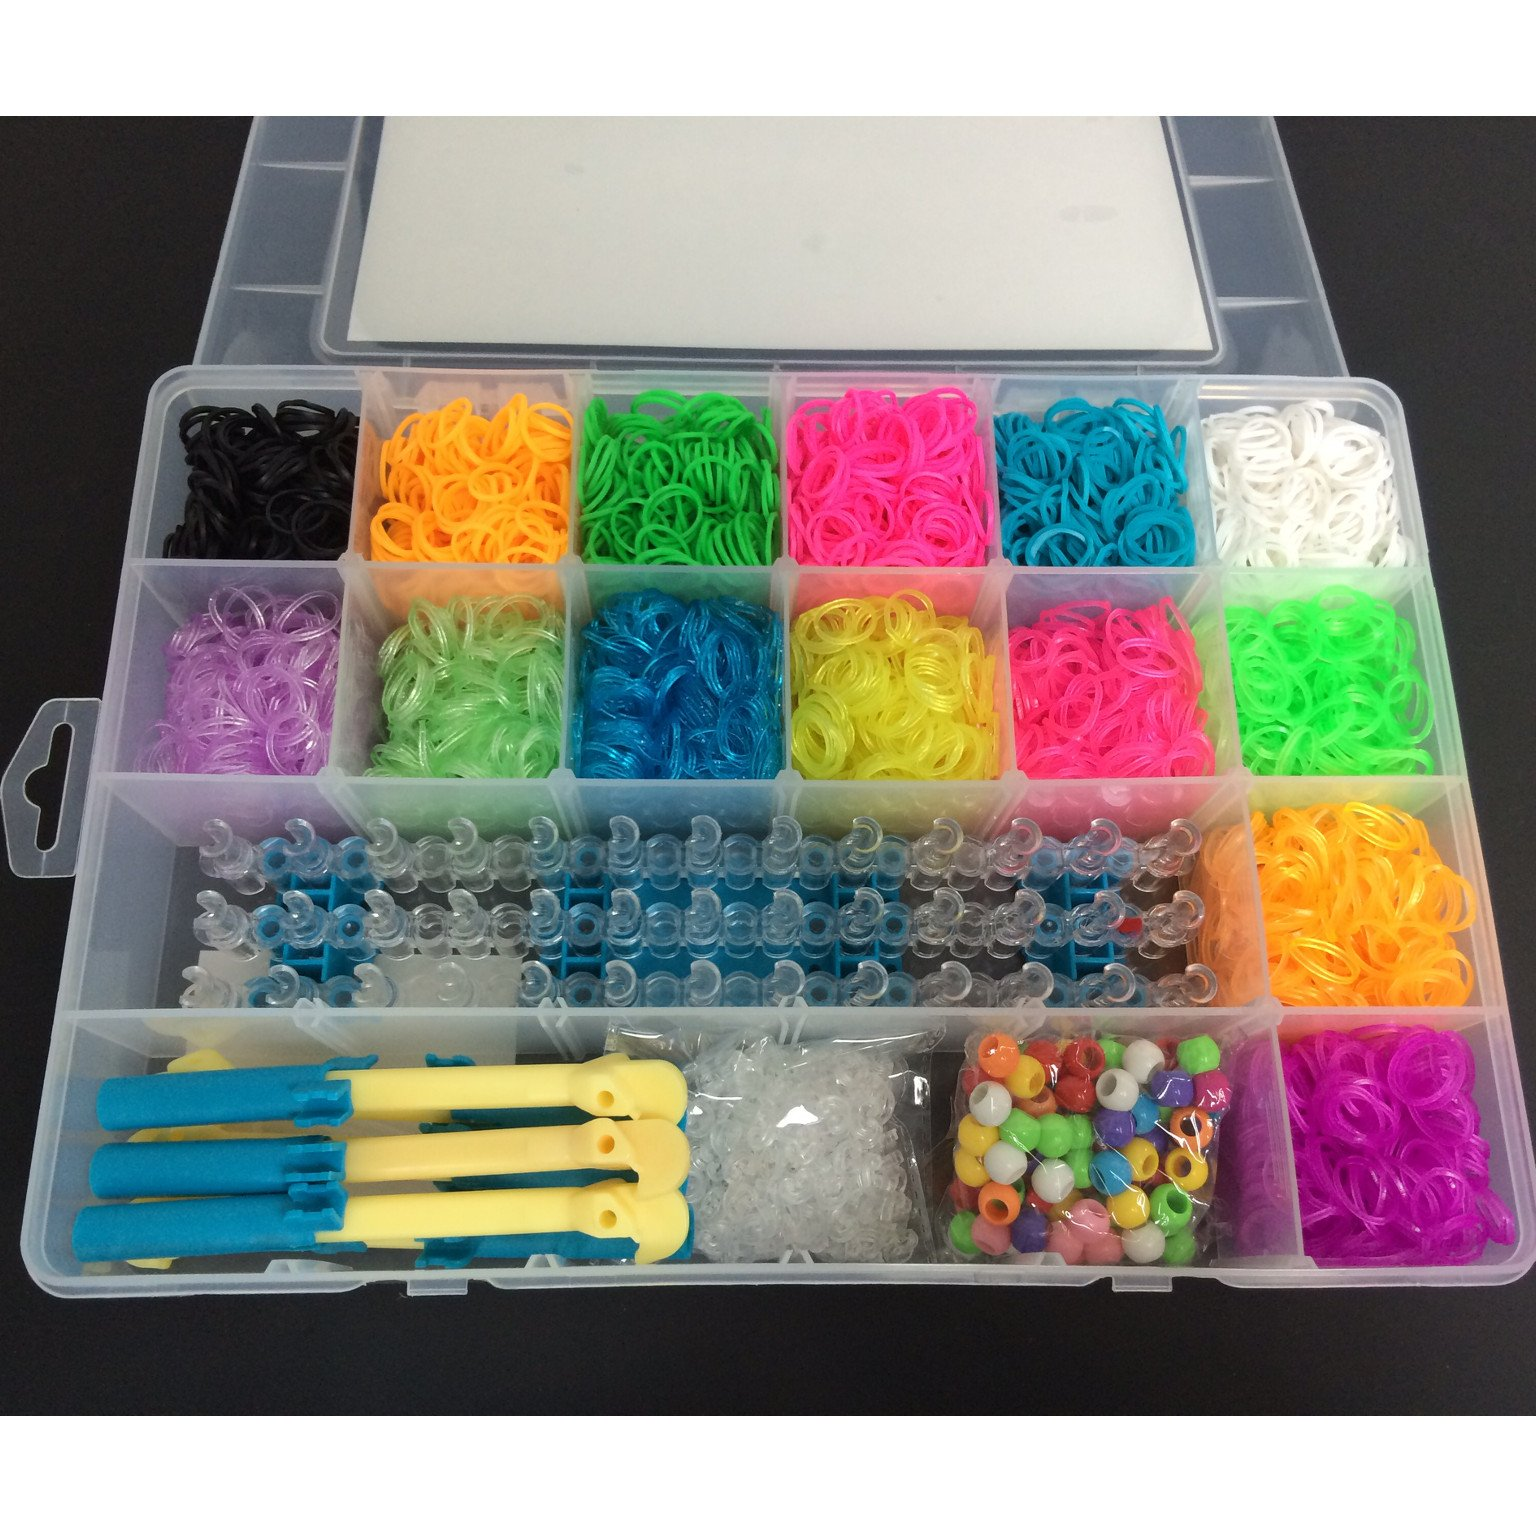 Loopy Loom 6000 Bands Delux Box Set Rubber Bracelet Making Kit with 100 Charms by ToyCentre (Image #1)